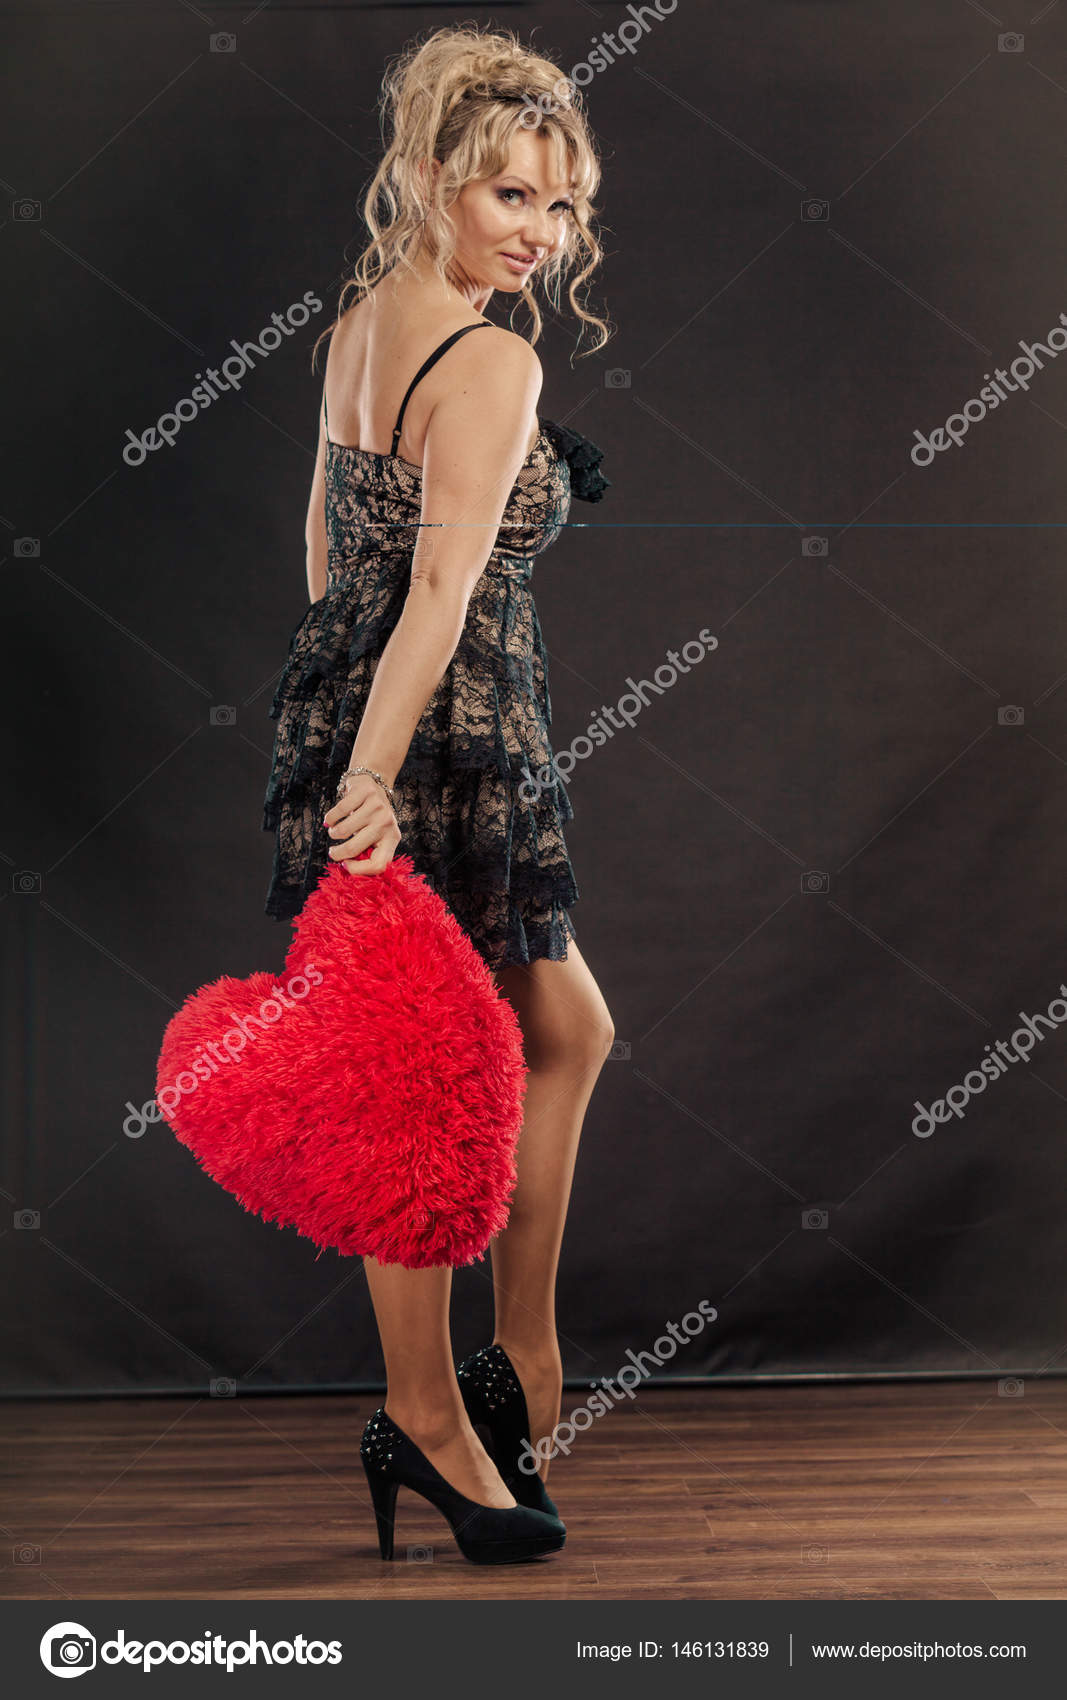 mature woman holds big red heart — stock photo © voyagerix #146131839